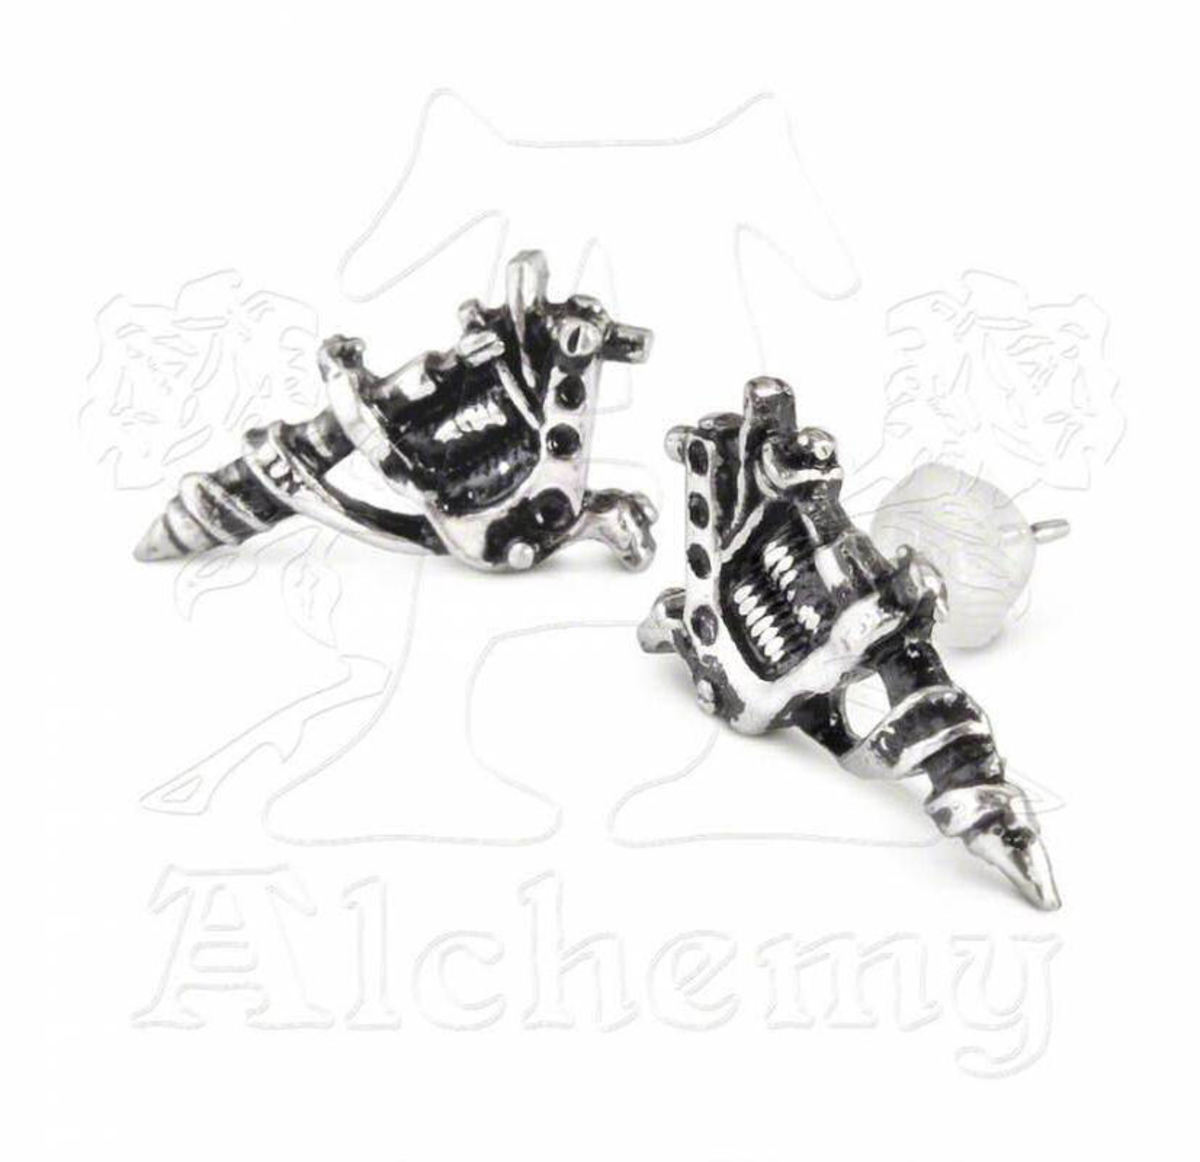 náušnice Tattoo Gun Earrings (pair) - ALCHEMY GOTHIC - ULFE3